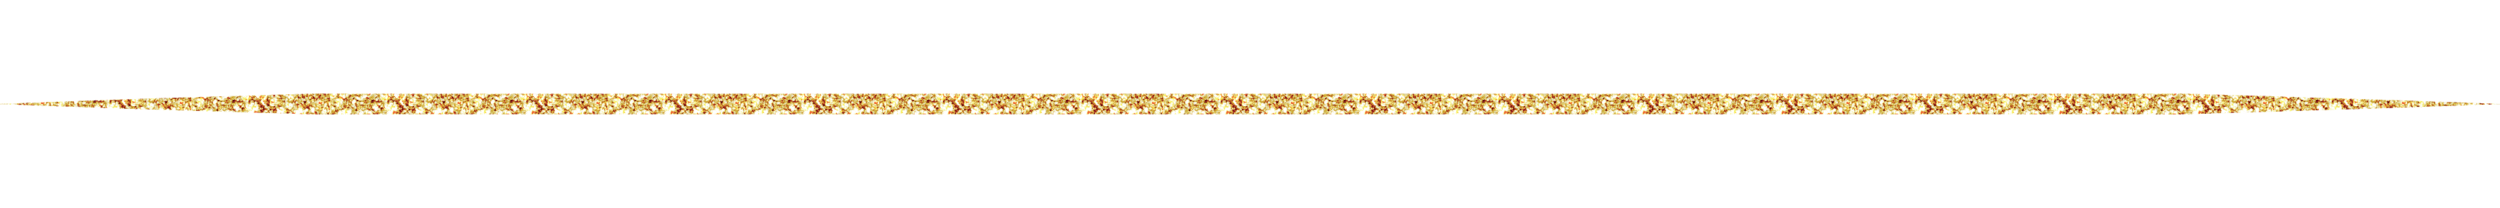 gold-line-borders-07.png